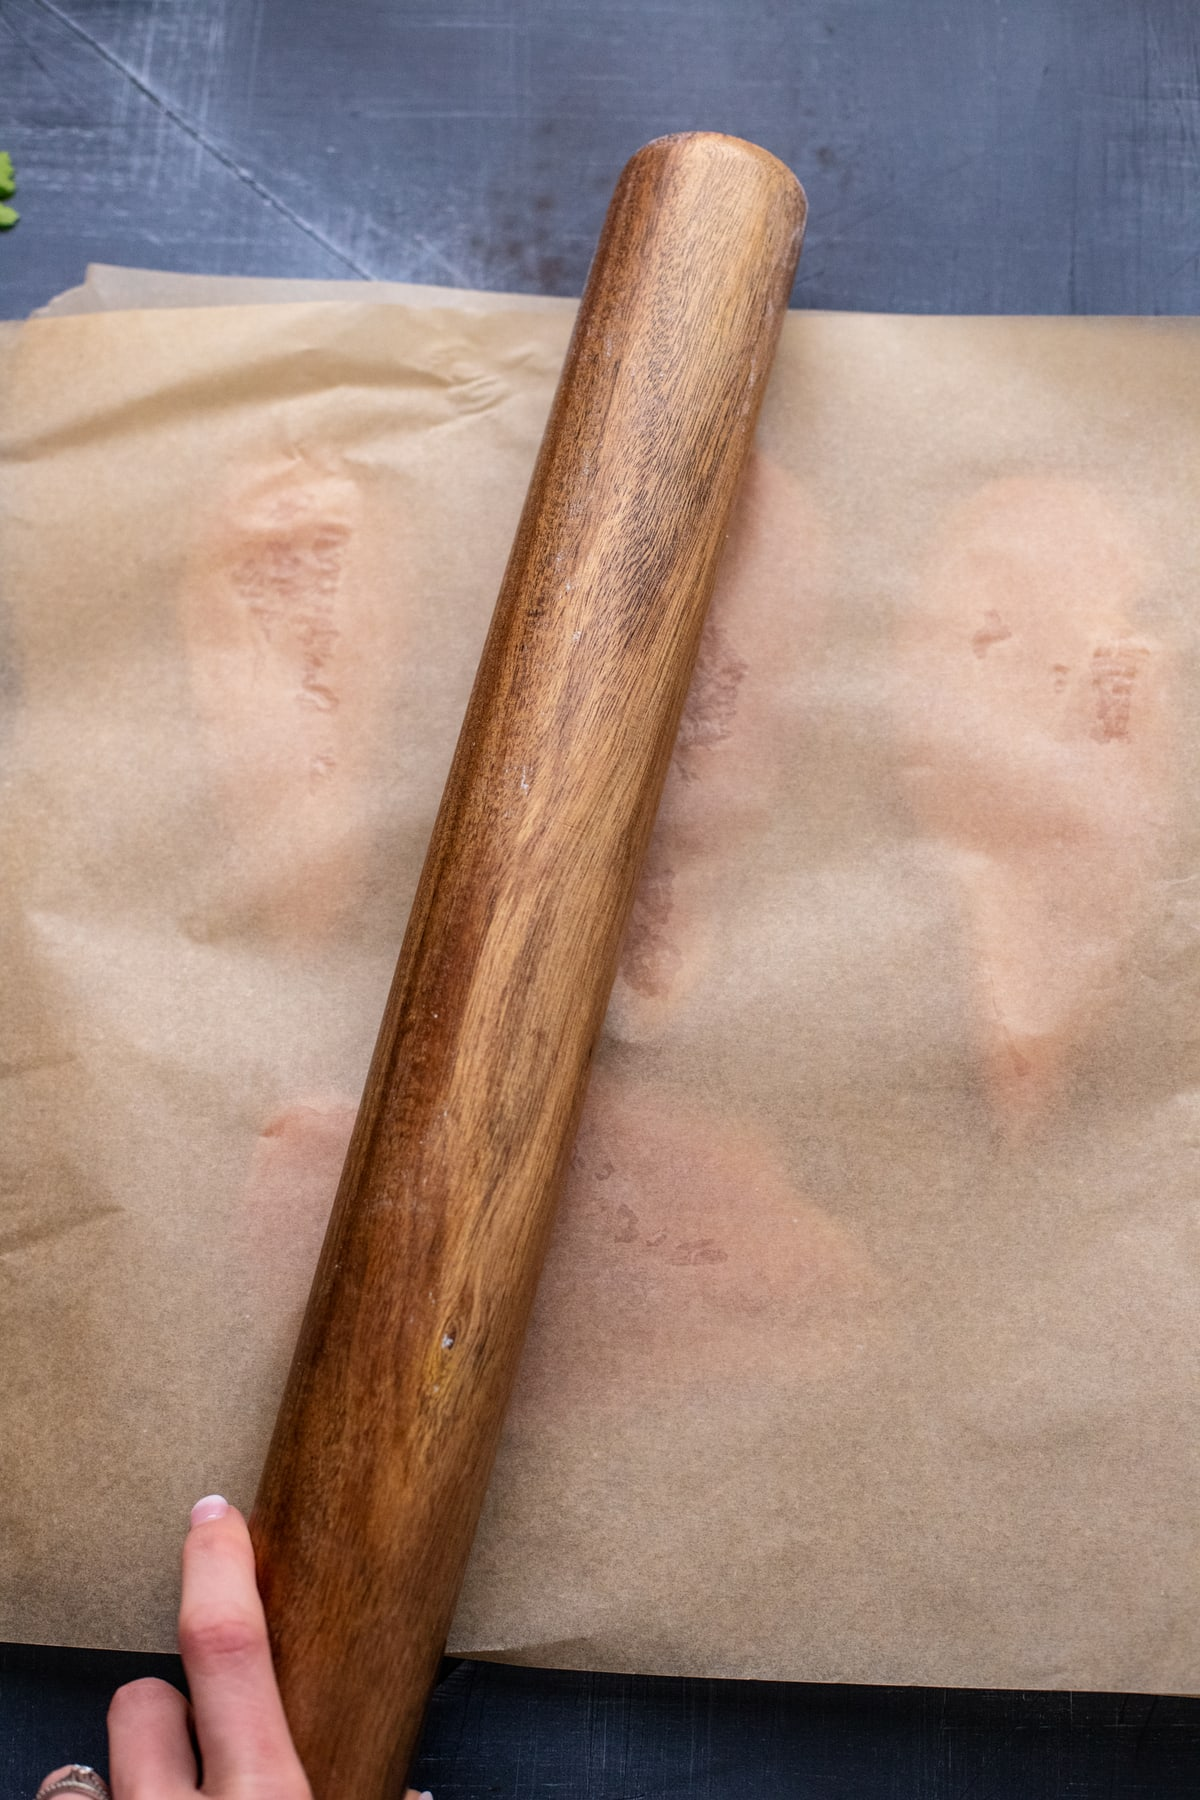 hand using rolling pin to pound chicken in between parchment paper.